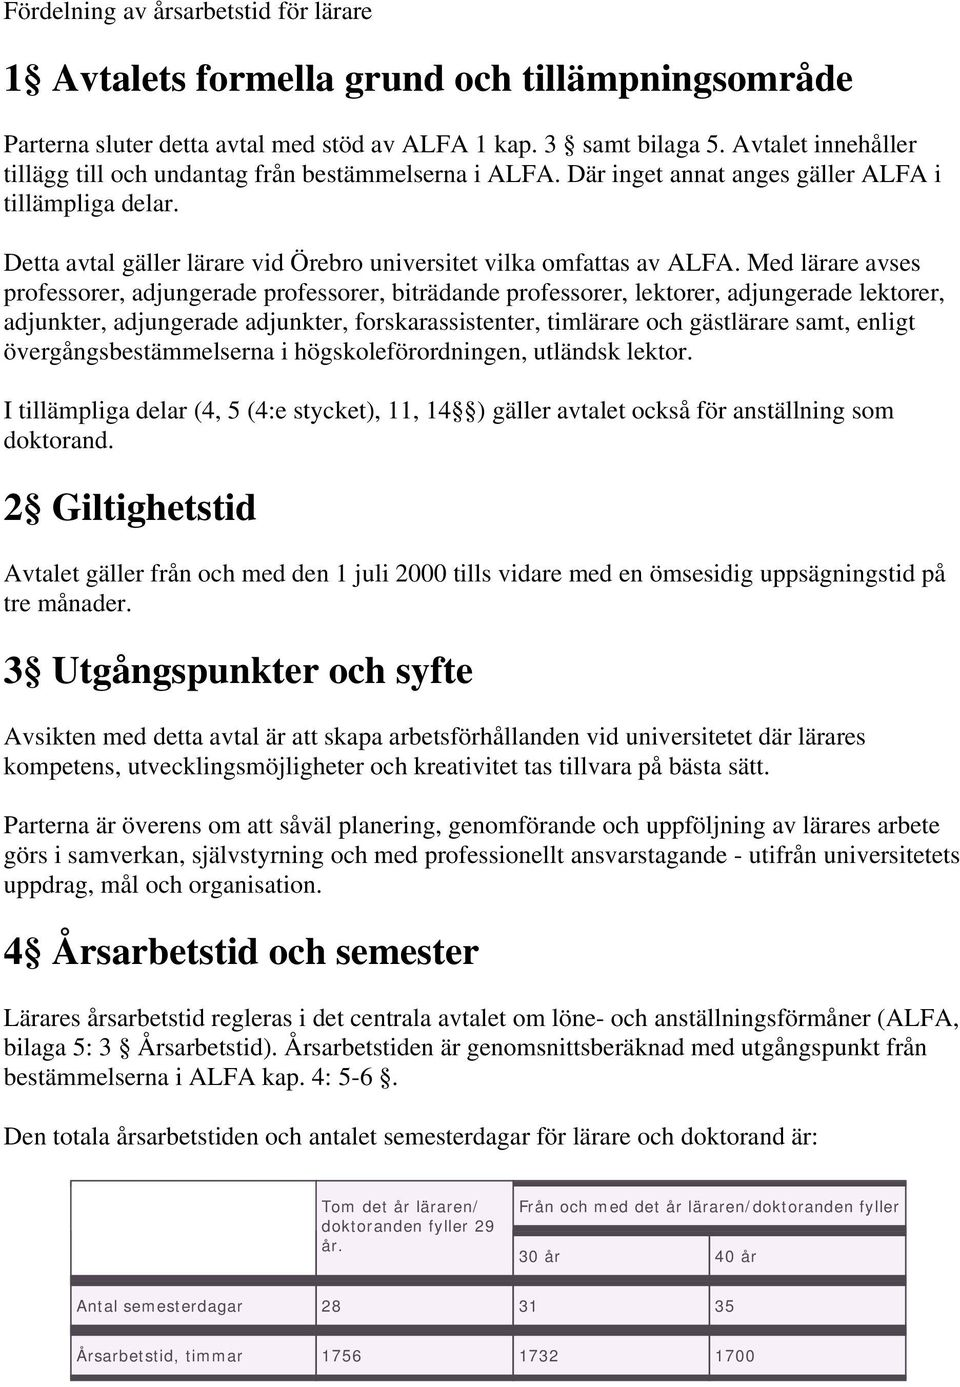 Med lärare avses professorer, adjungerade professorer, biträdande professorer, lektorer, adjungerade lektorer, adjunkter, adjungerade adjunkter, forskarassistenter, timlärare och gästlärare samt,